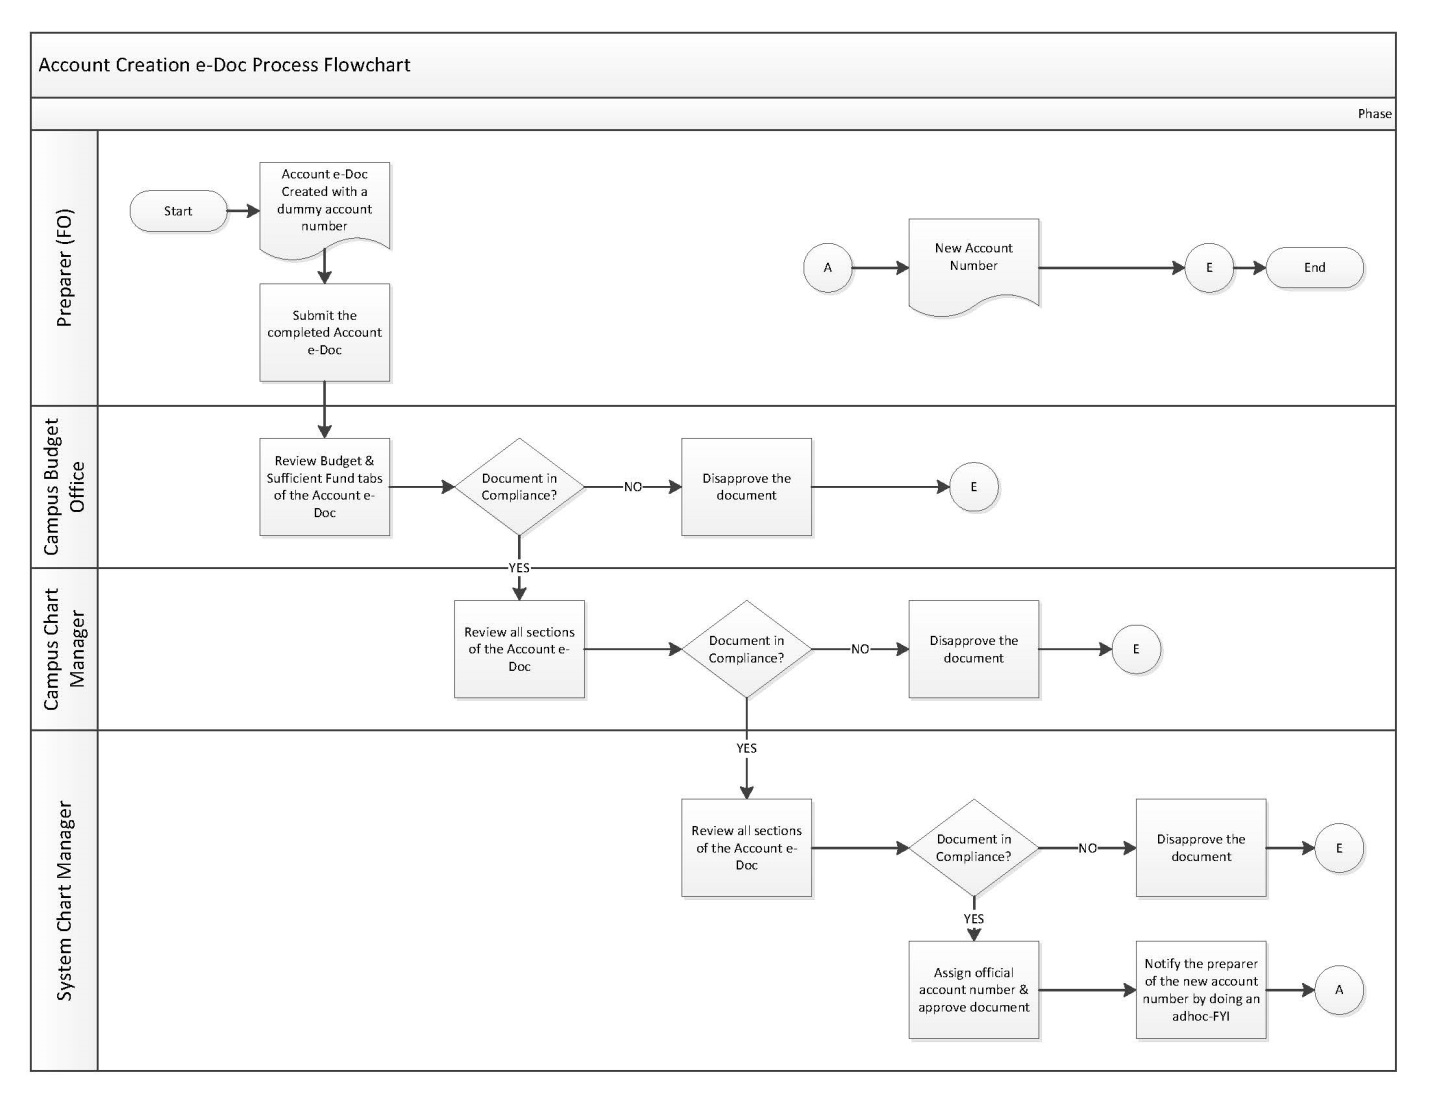 Account number creation flowchart